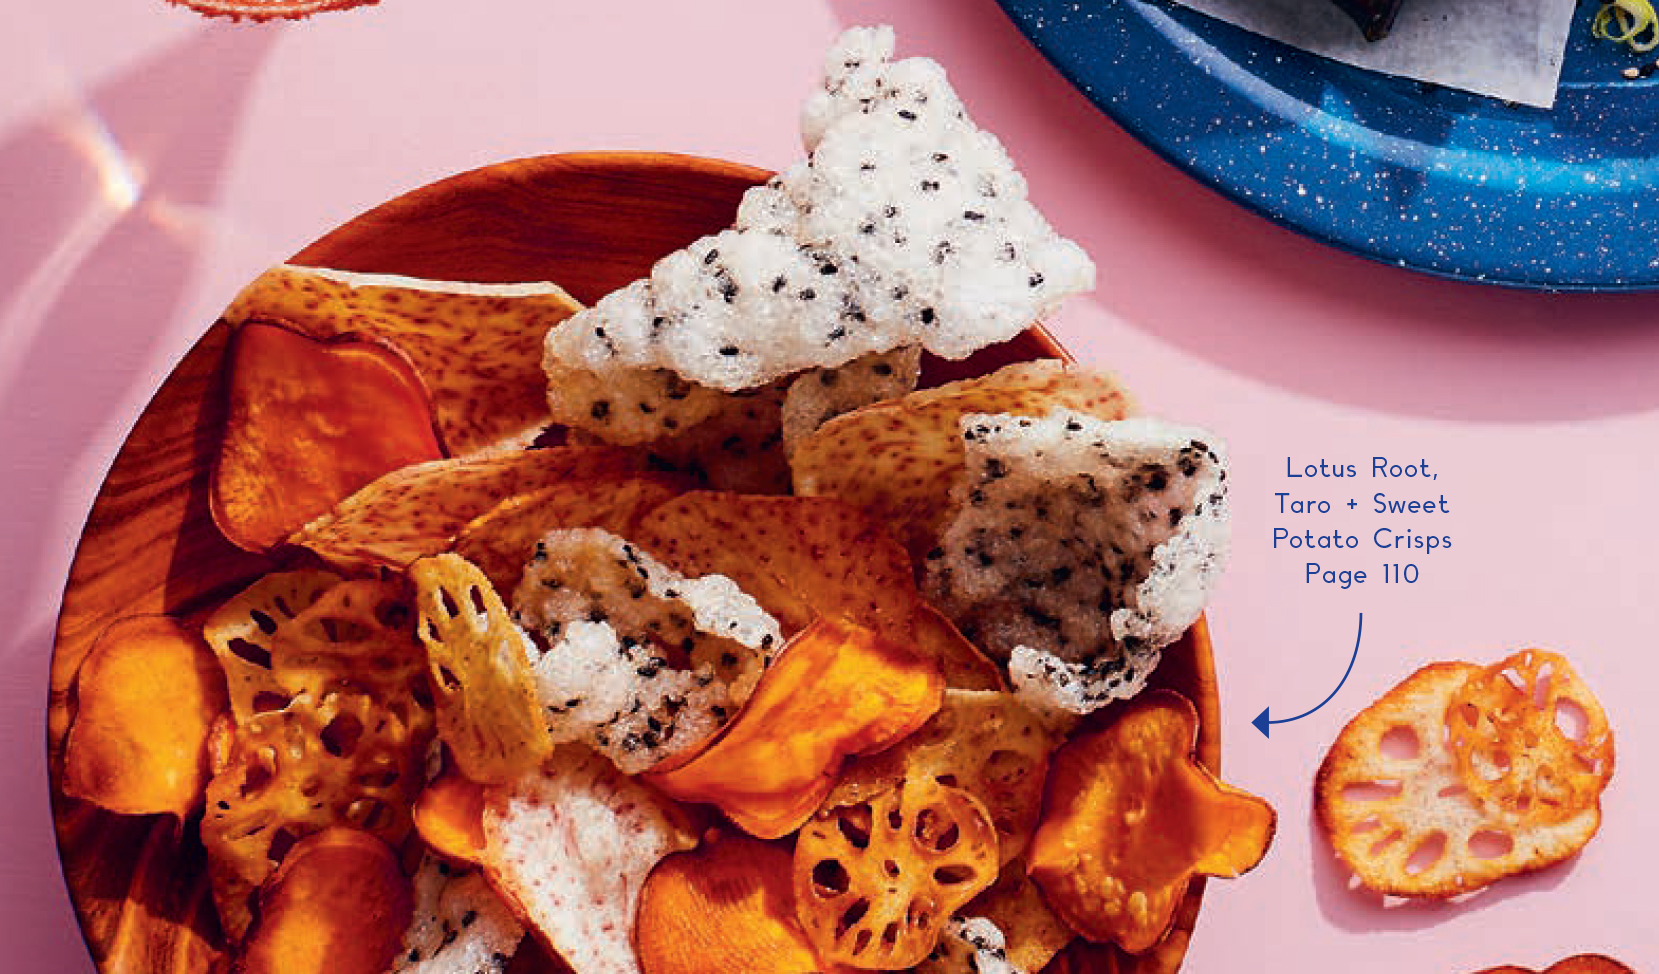 Lotus root, taro + sweet potato crisps